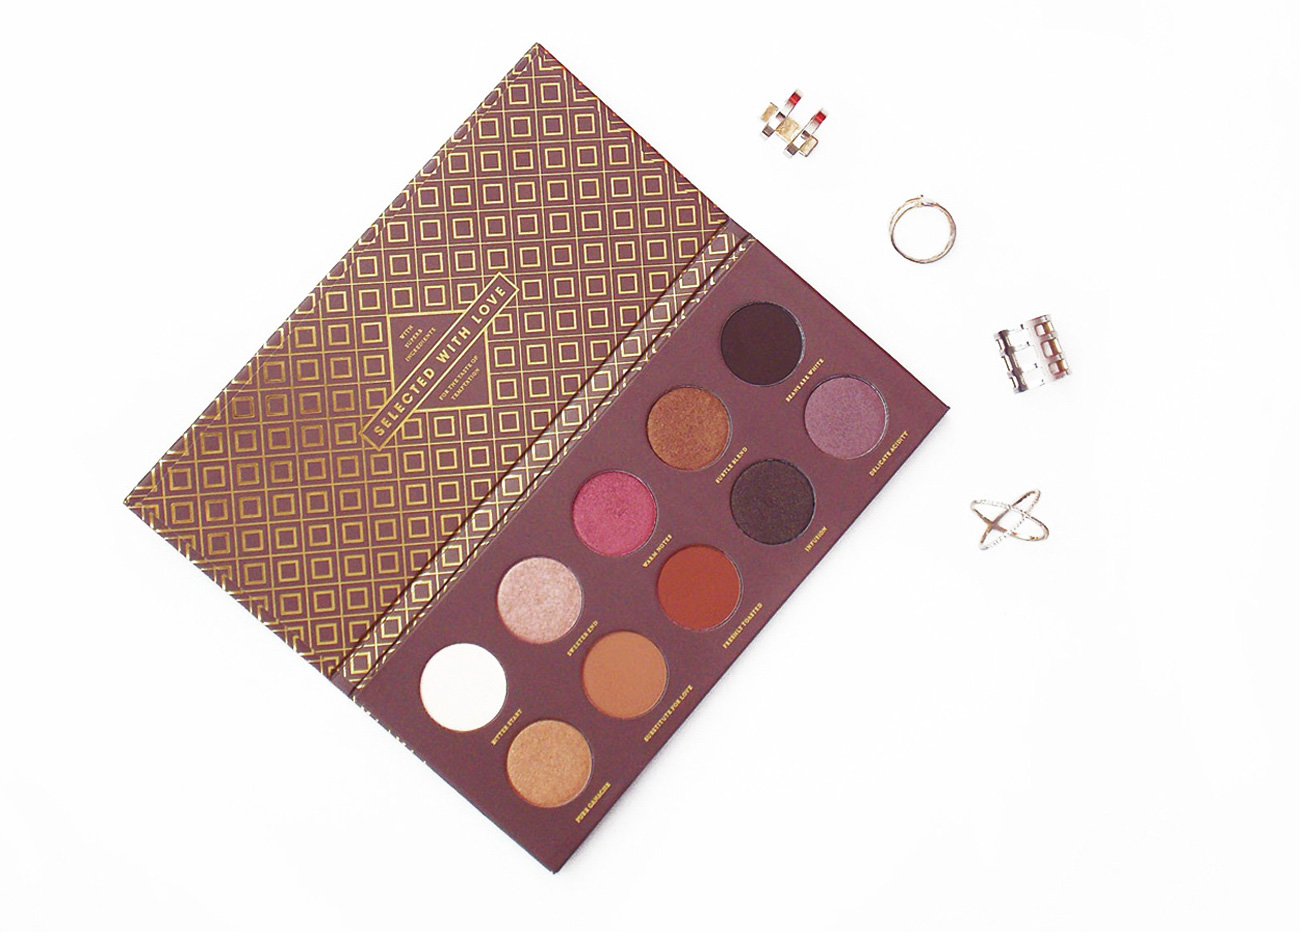 Zoeva Cocoa Blend Palette Review and Swatches